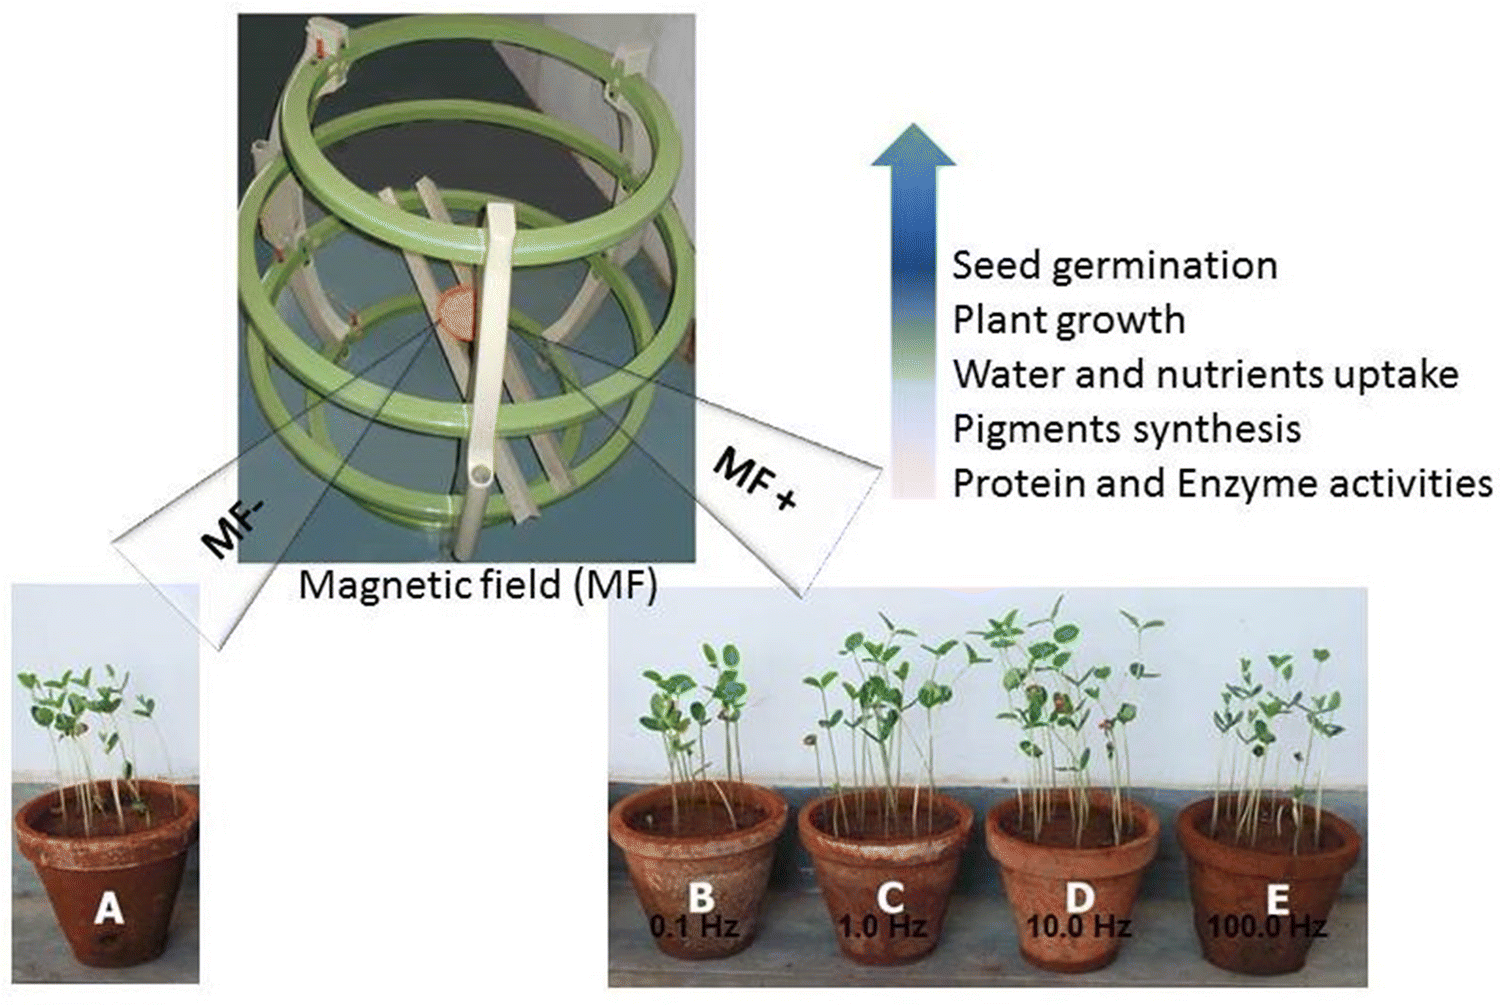 Magnetic field regulates plant functions, growth and